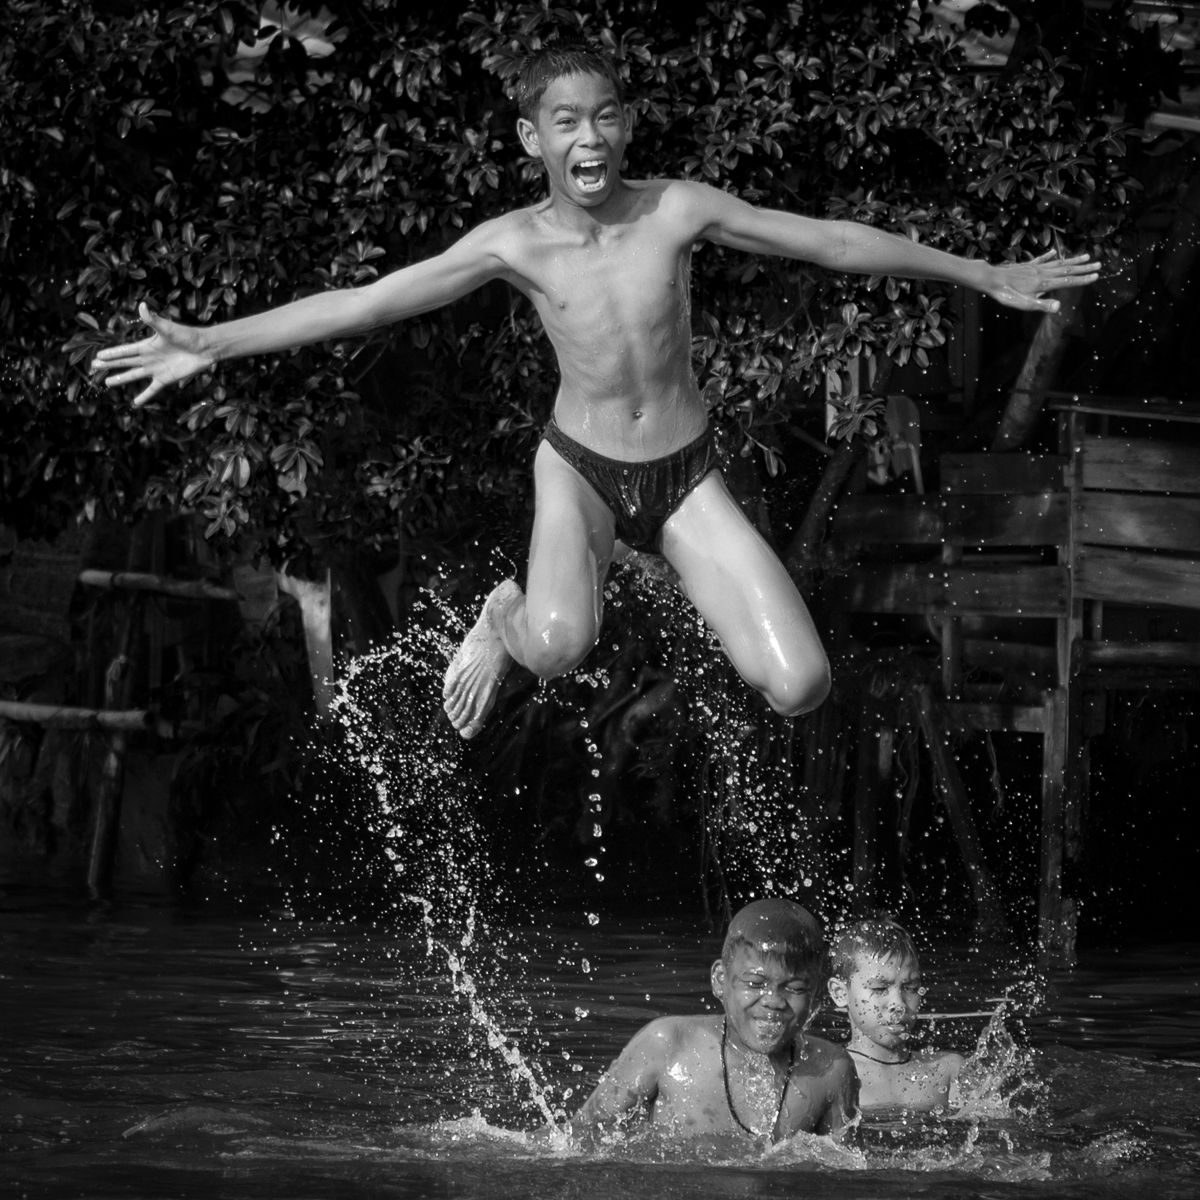 bitch-young-boys-skinny-dipping